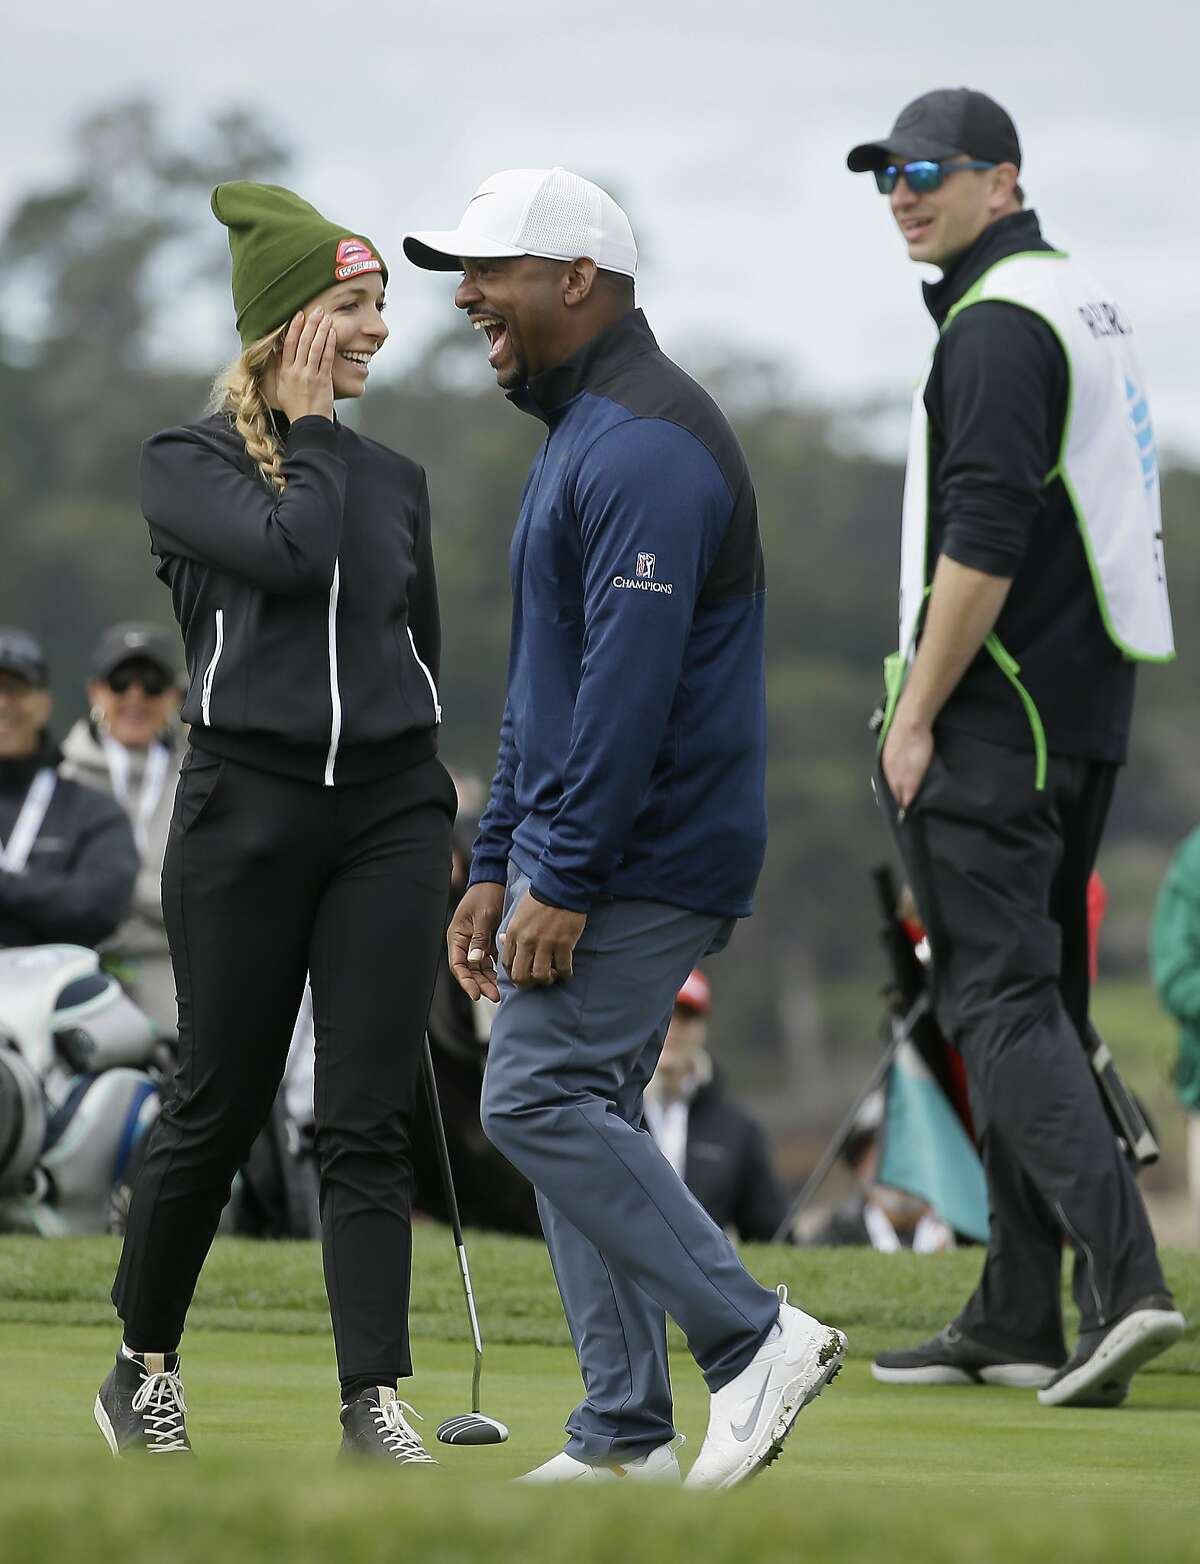 Alfonso Ribeiro, center and Kira Kazantsev, left, laugh after putting on the sixth green of the Pebble Beach Golf Links during the third round of the AT&T Pebble Beach Pro-Am golf tournament, Saturday, Feb. 9, 2019, in Pebble Beach, Calif. (AP Photo/Eric Risberg)